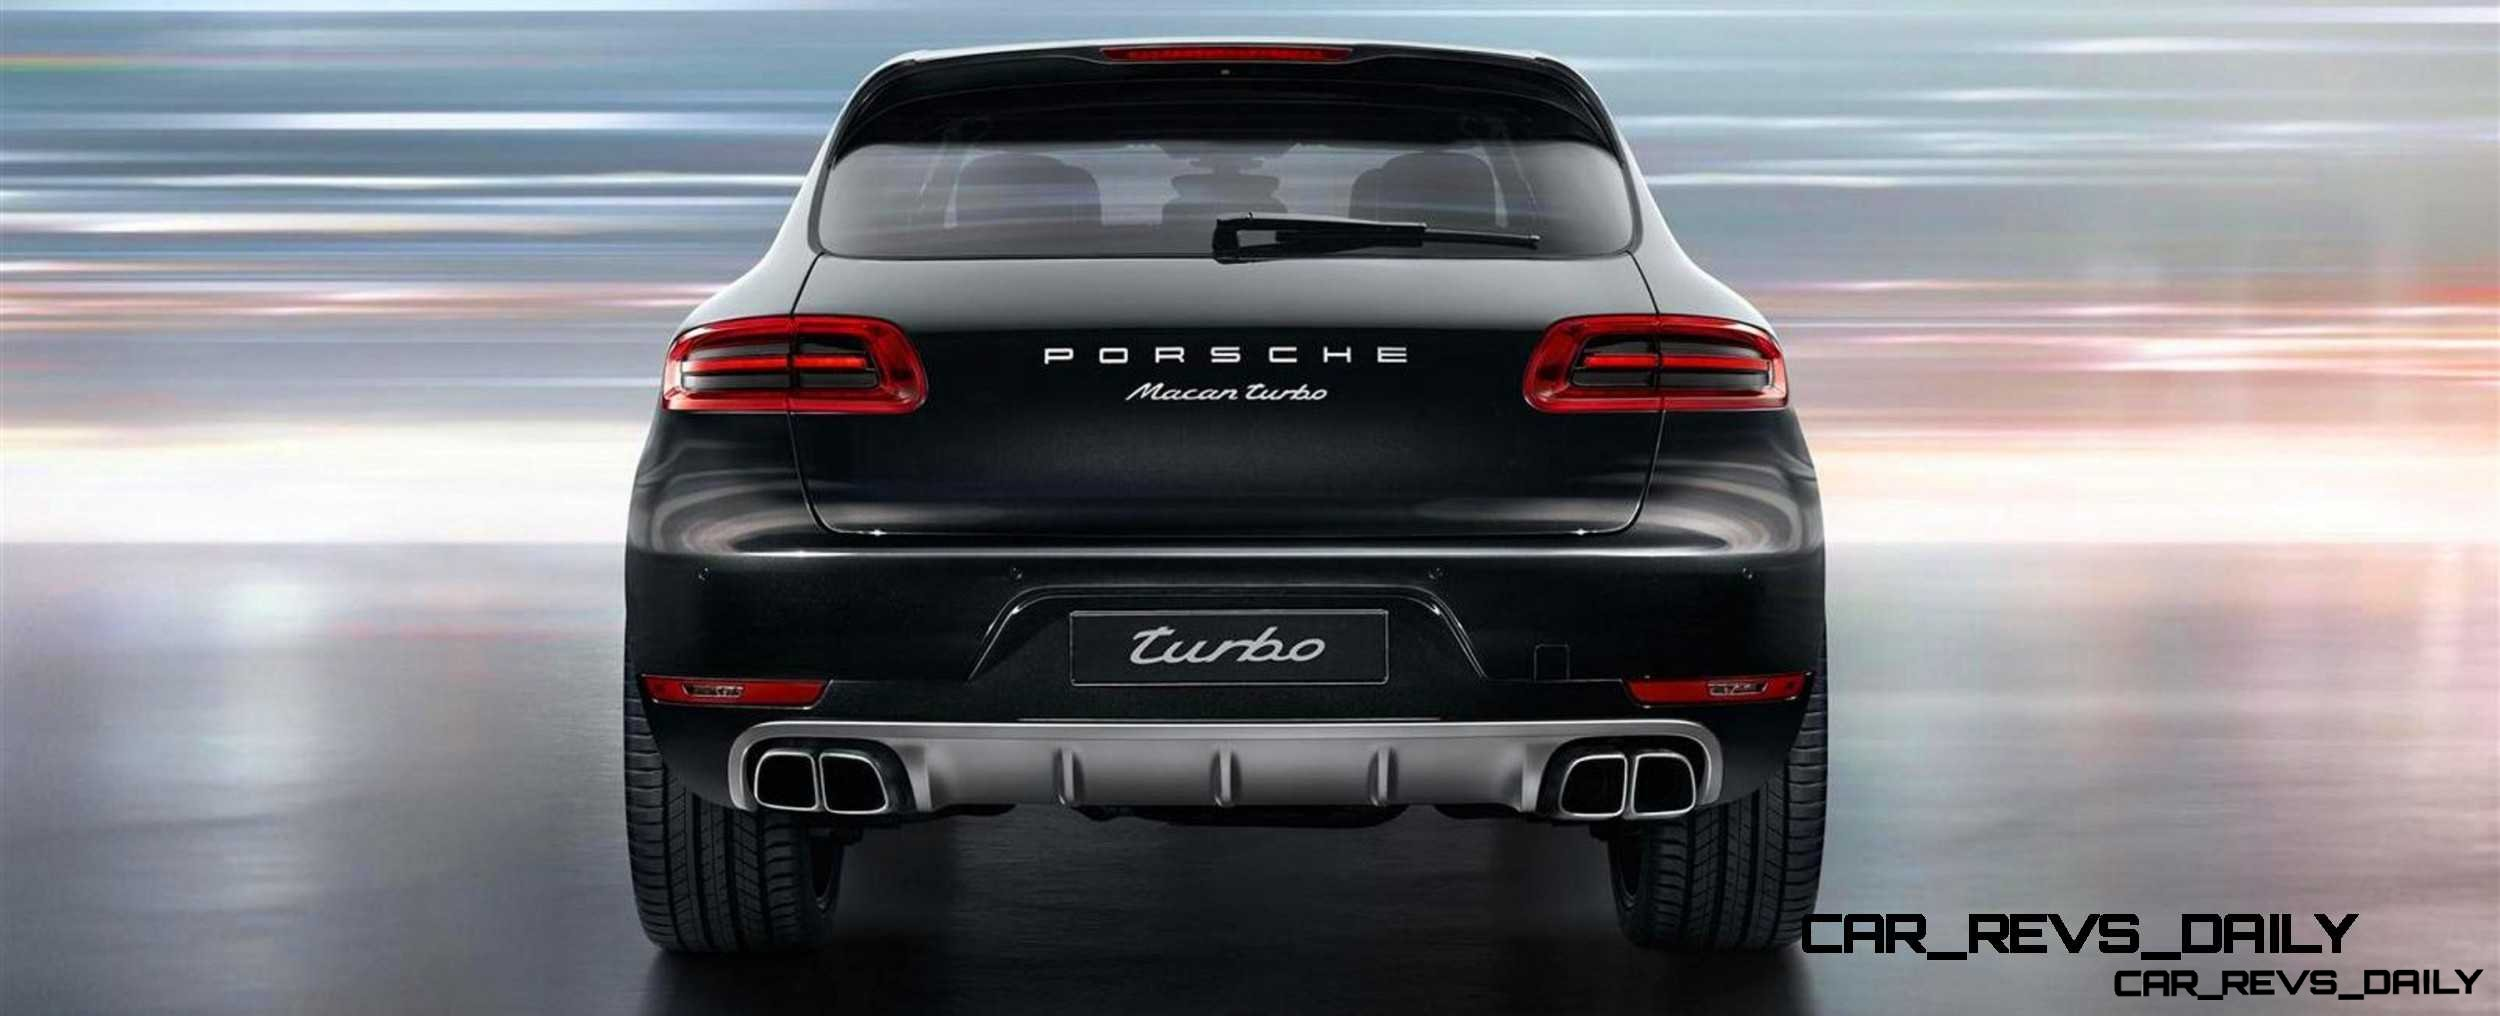 2015 Porsche Macan - Latest Images - CarRevsDaily.com 81